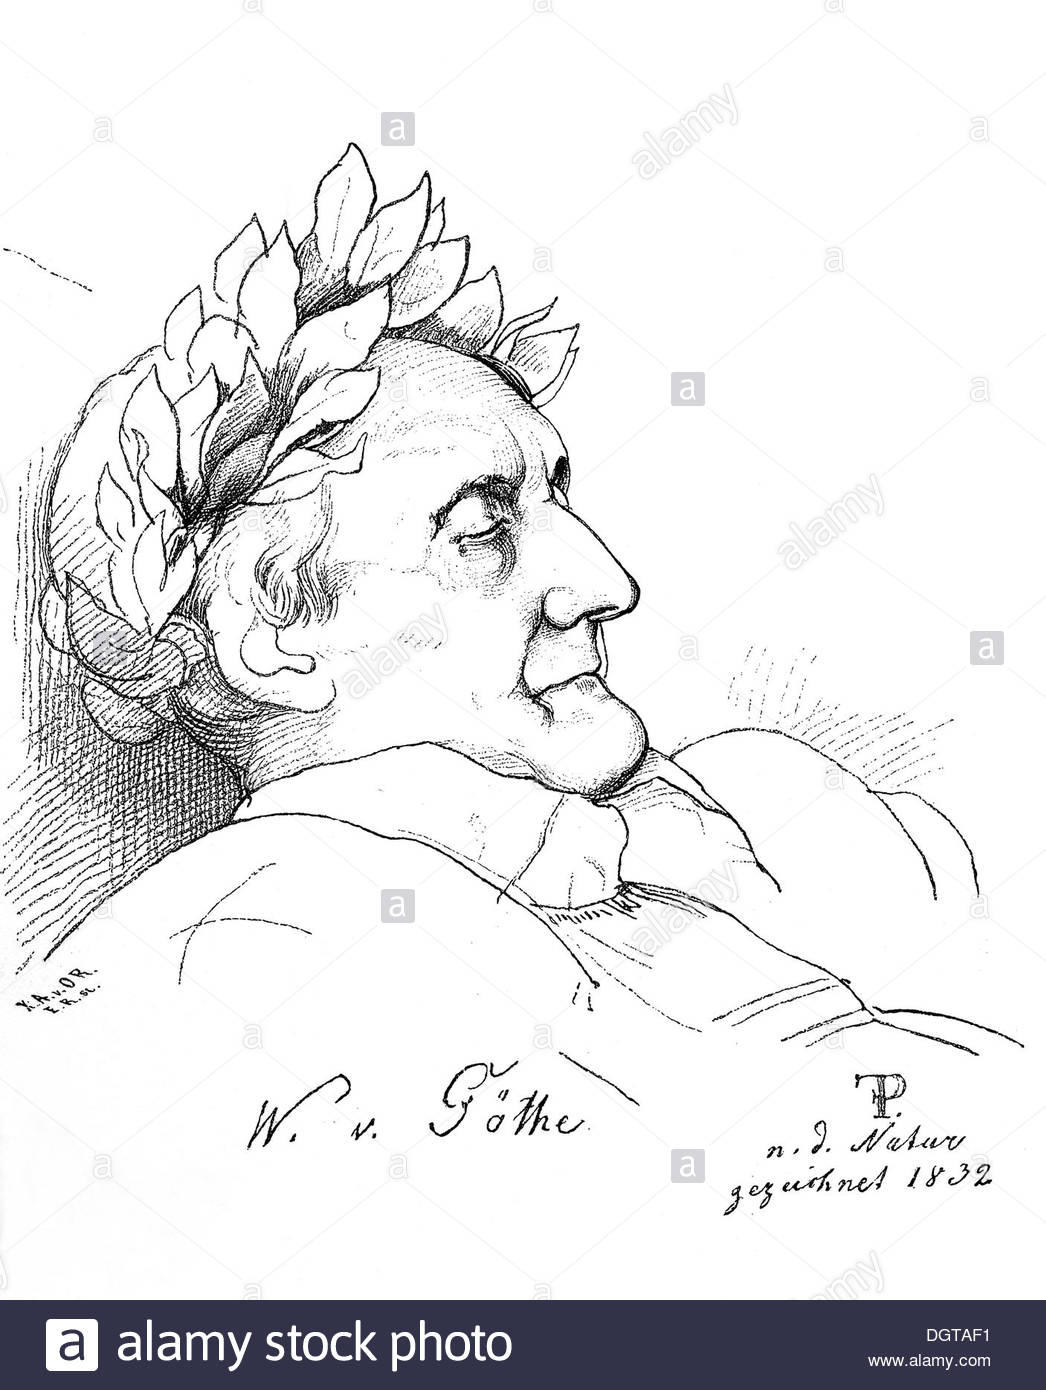 1046x1390 Goethe In Death, Historical Illustration In Deutsche Stock Photo